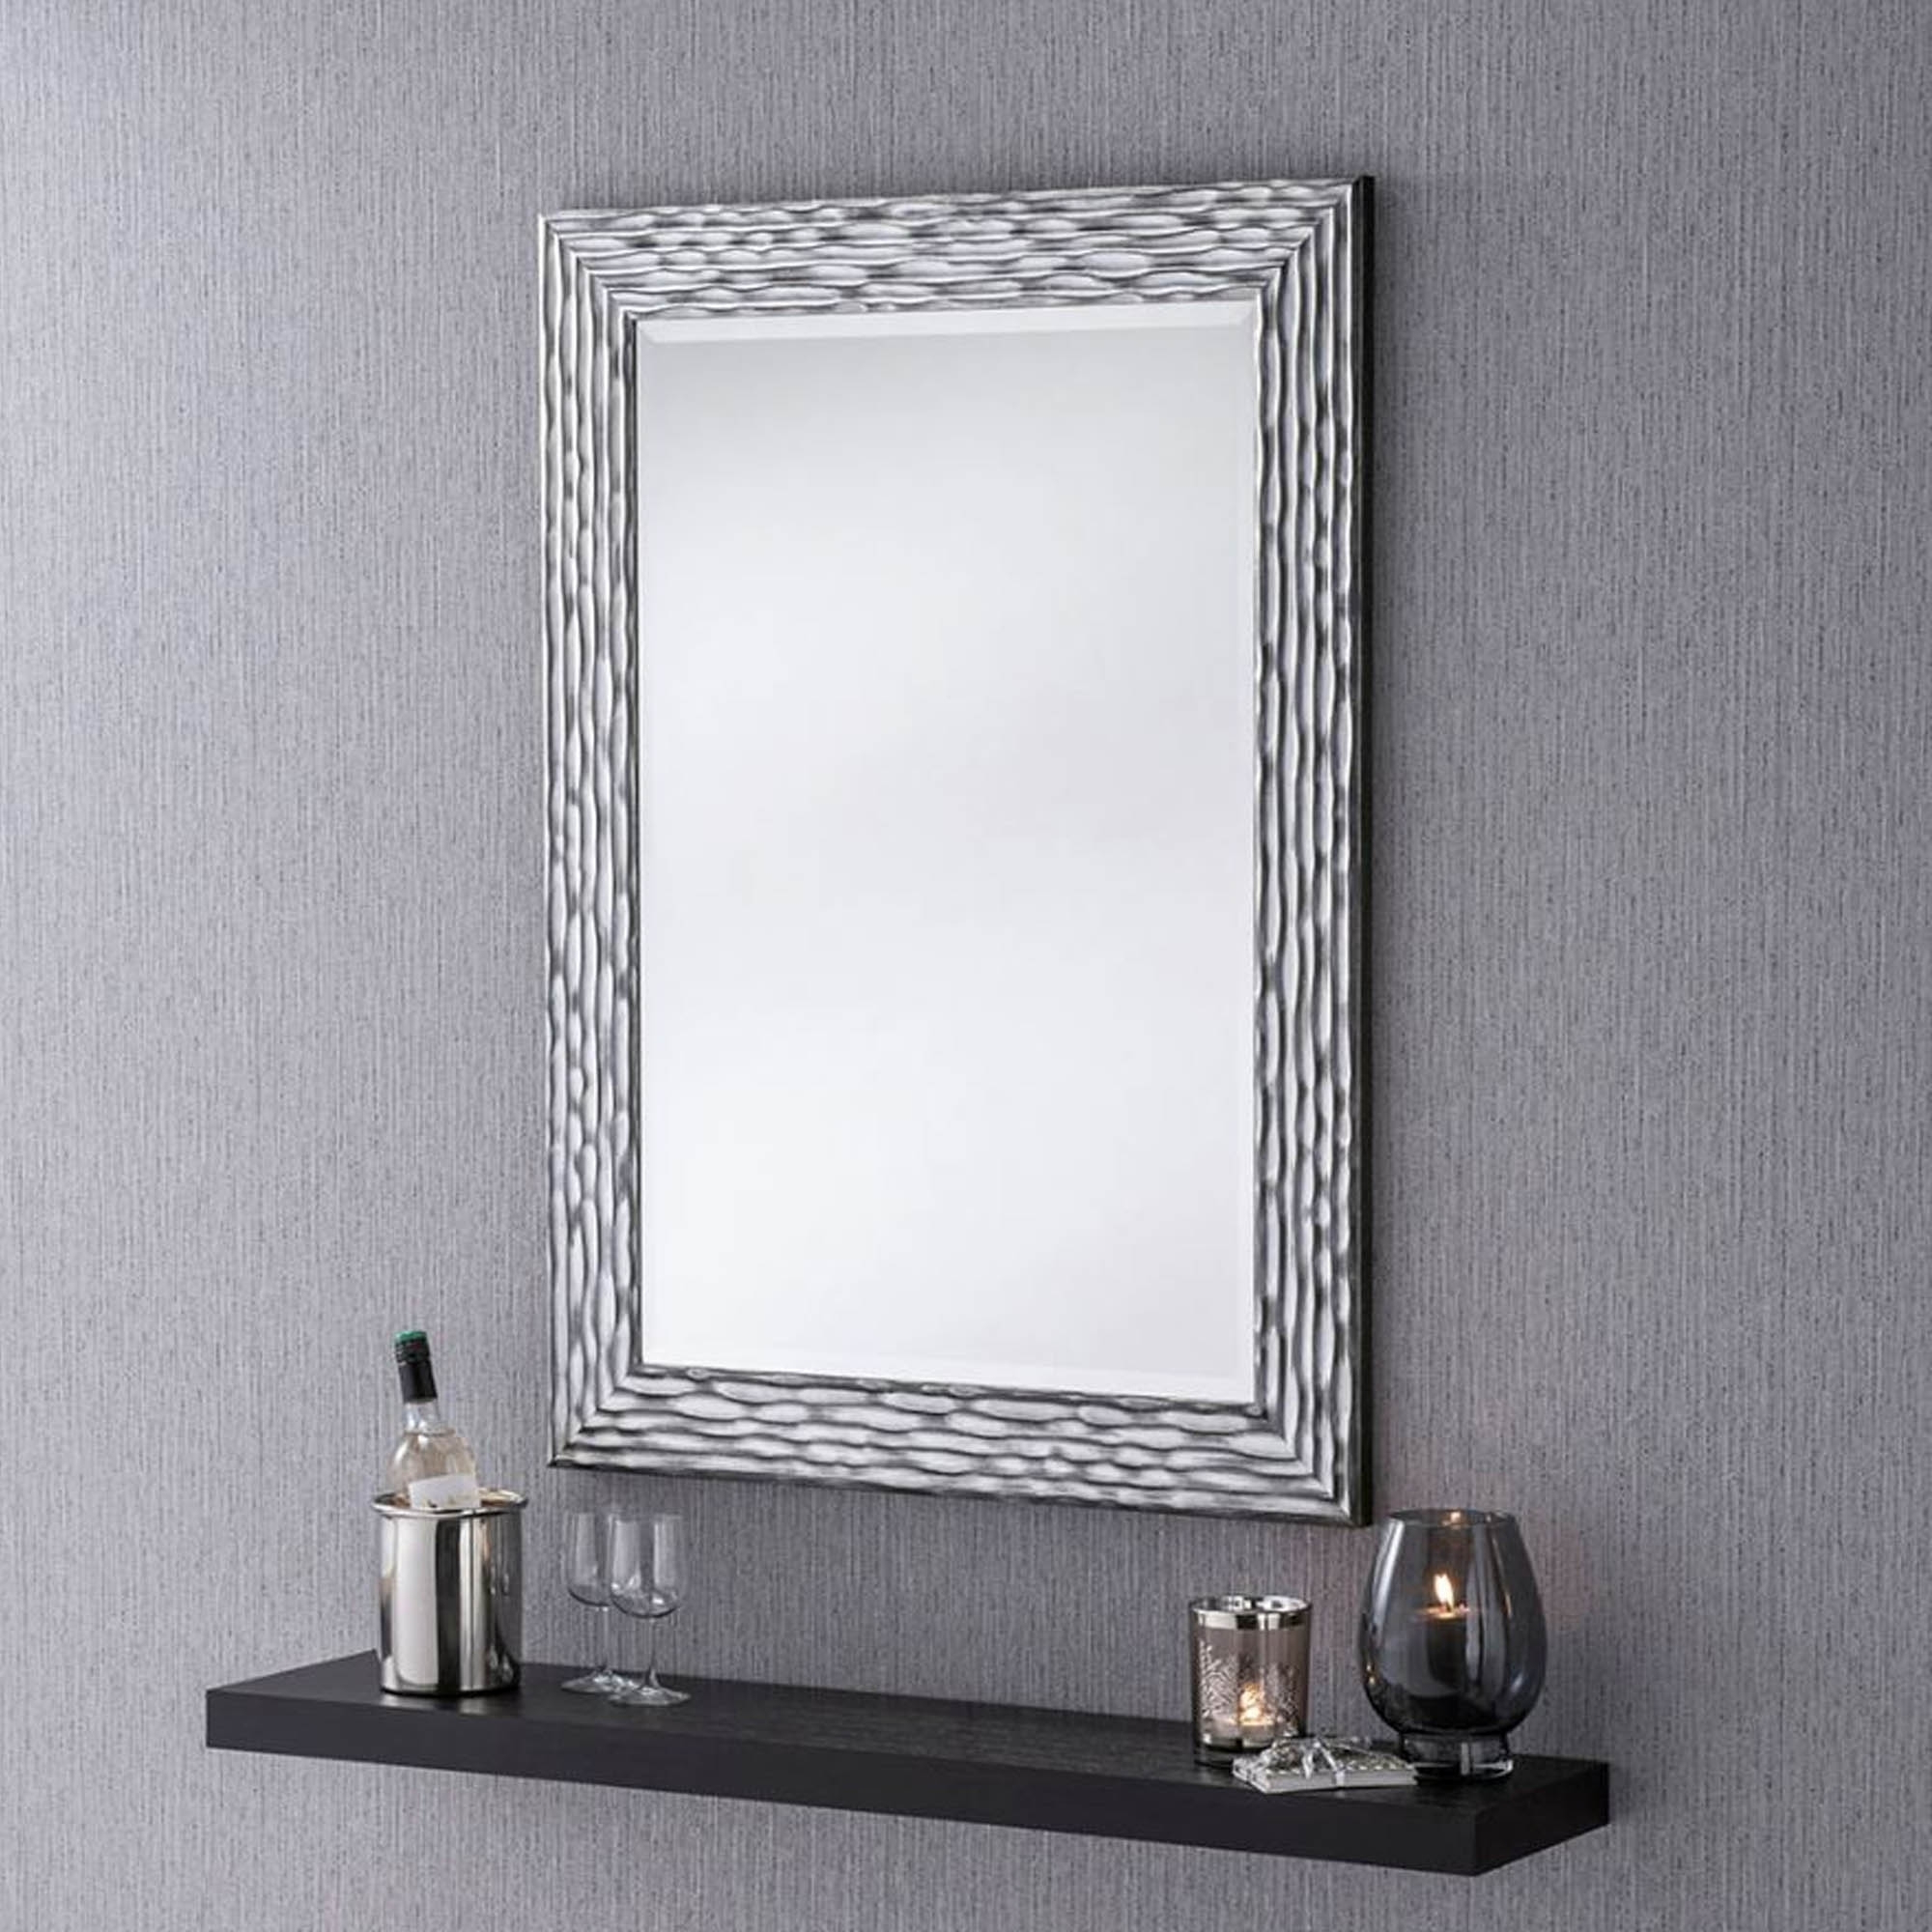 Well Liked Black And Silver Textured Wall Mirror Inside Black And Silver Wall Mirrors (View 2 of 20)